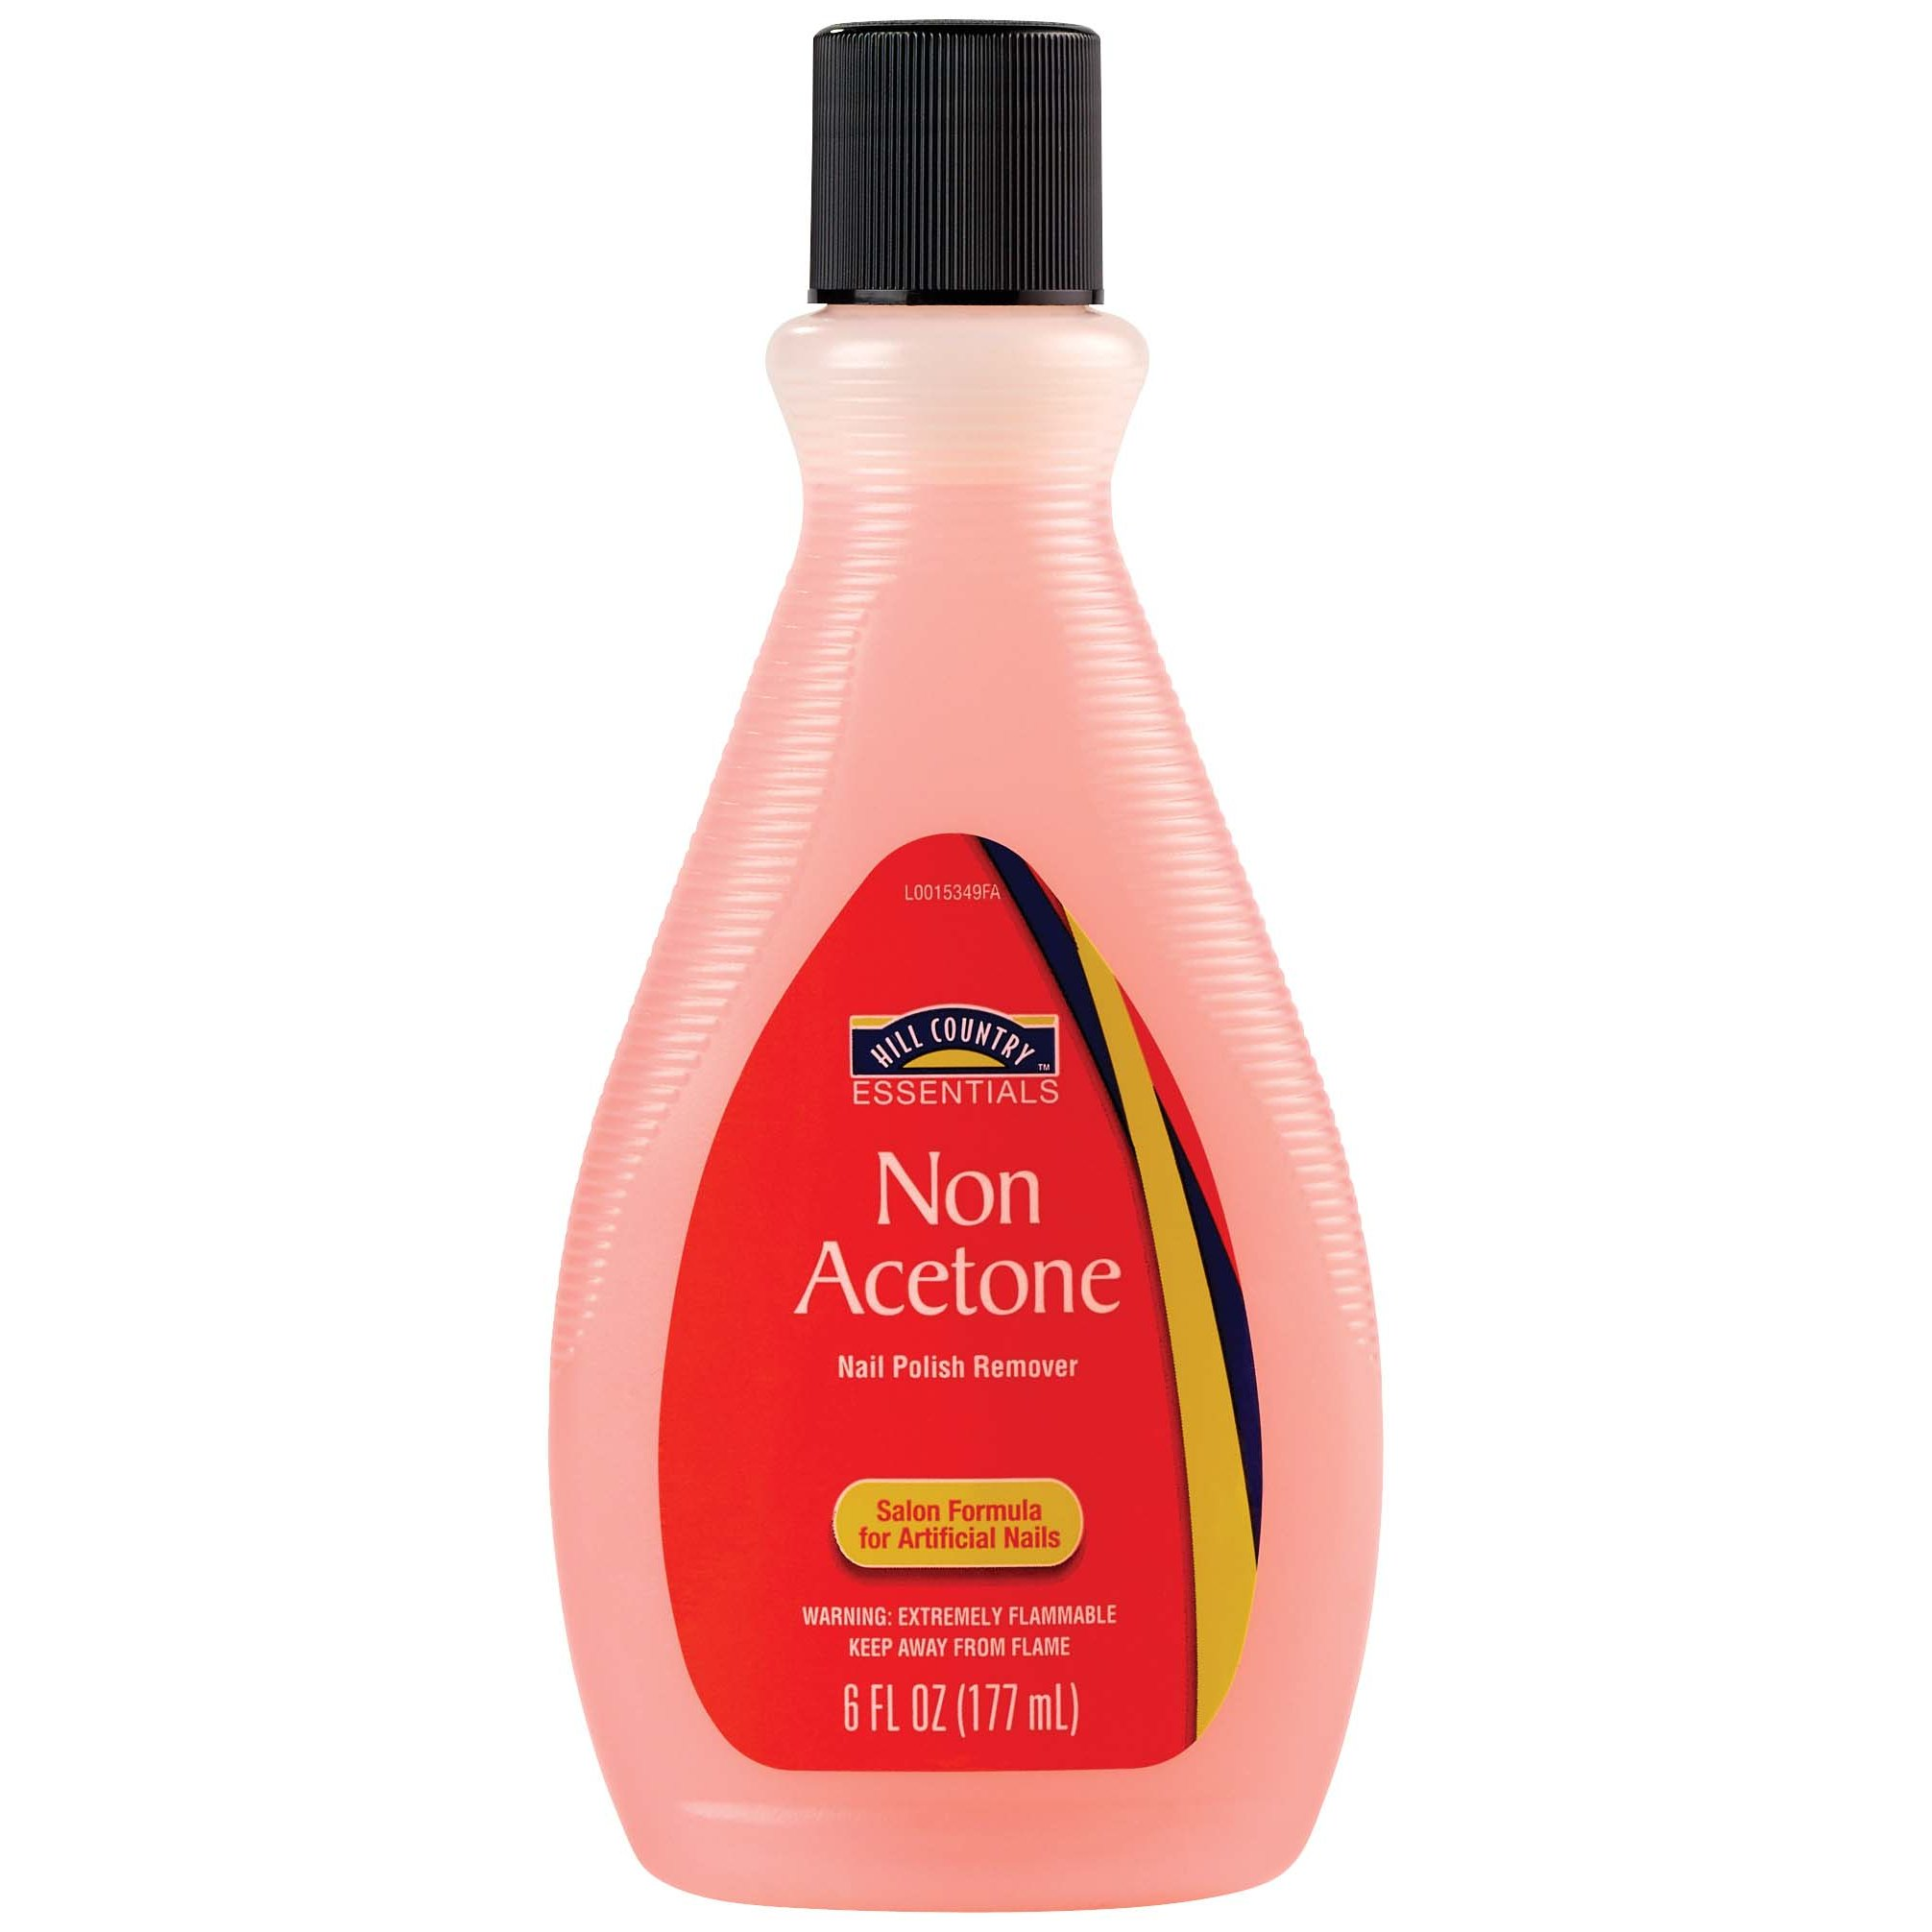 Hill Country Essentials Non Acetone Nail Polish Remover - Shop Nail ...